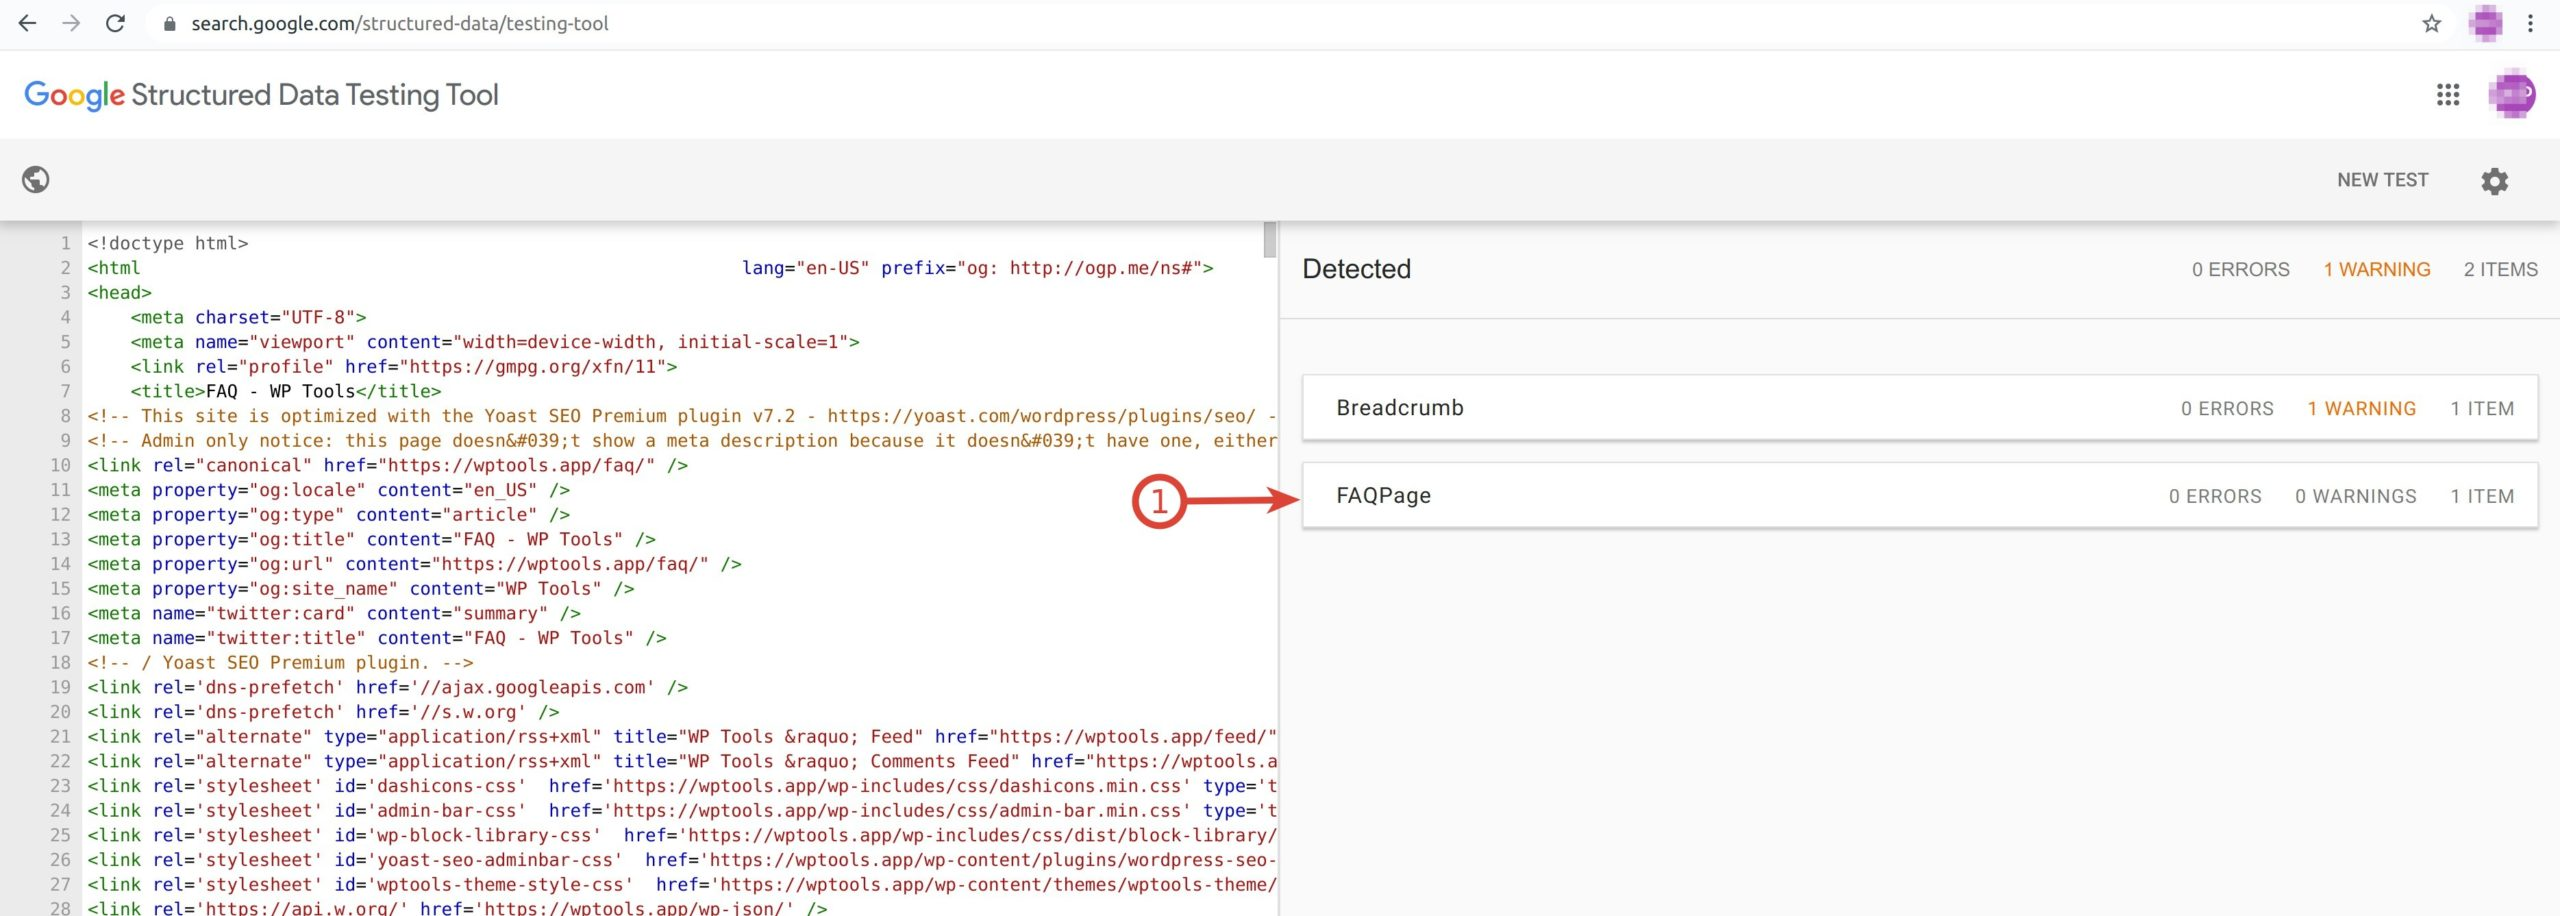 Google Structured Data Testing Tool - FAQ Schema via Code Snippet